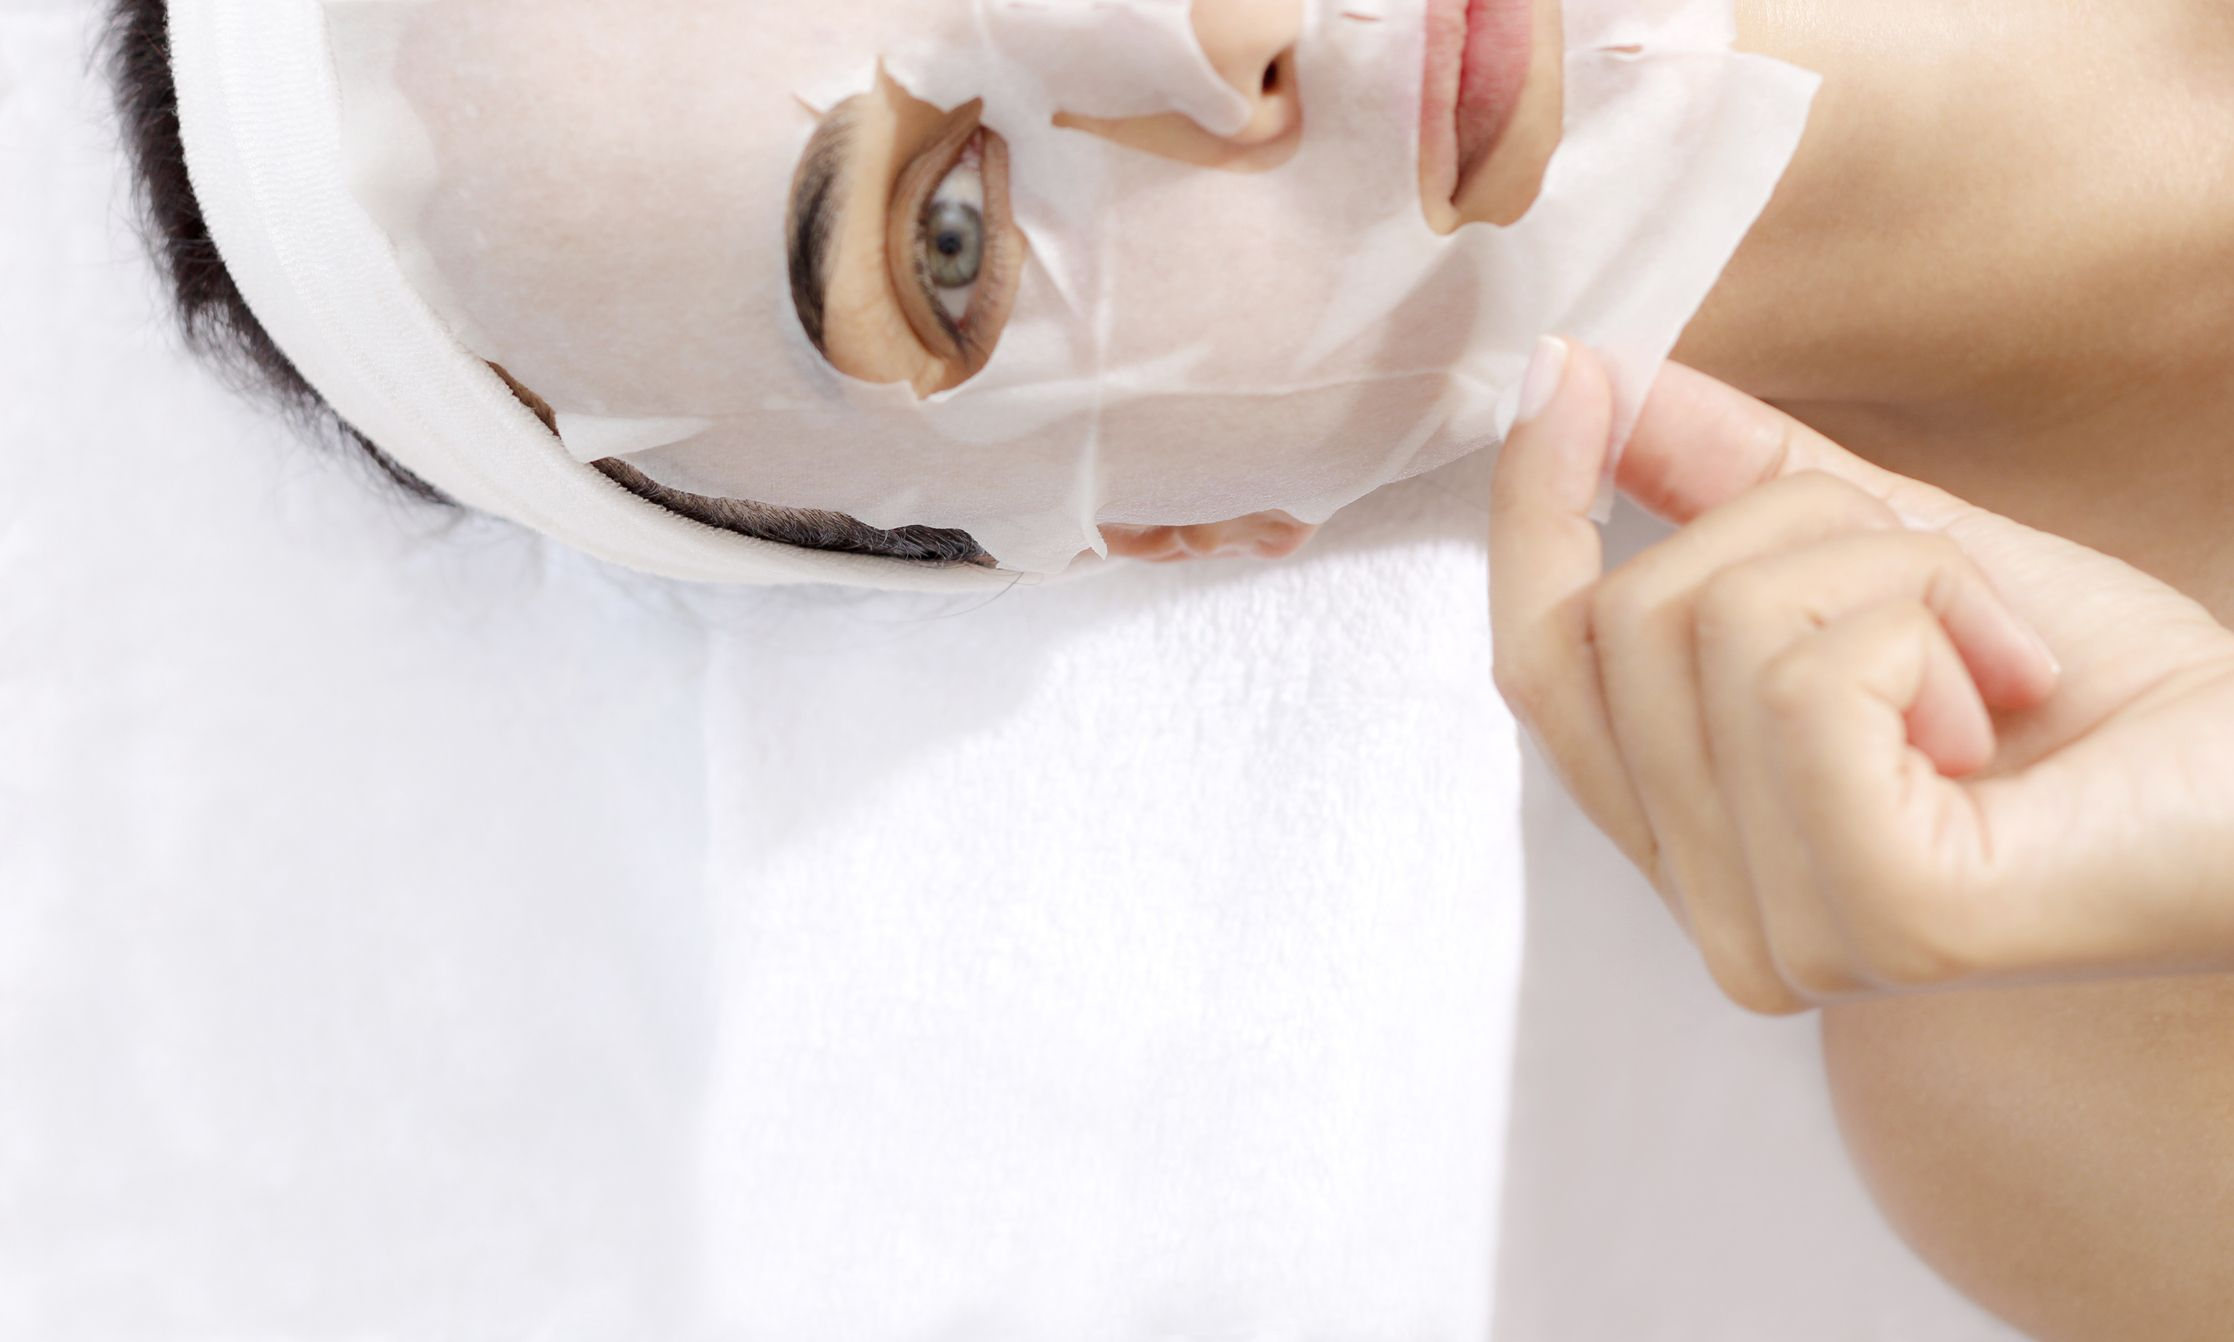 Sheet Masks For Face What To Know How Use Them And Benefits Rorec Mask Olive